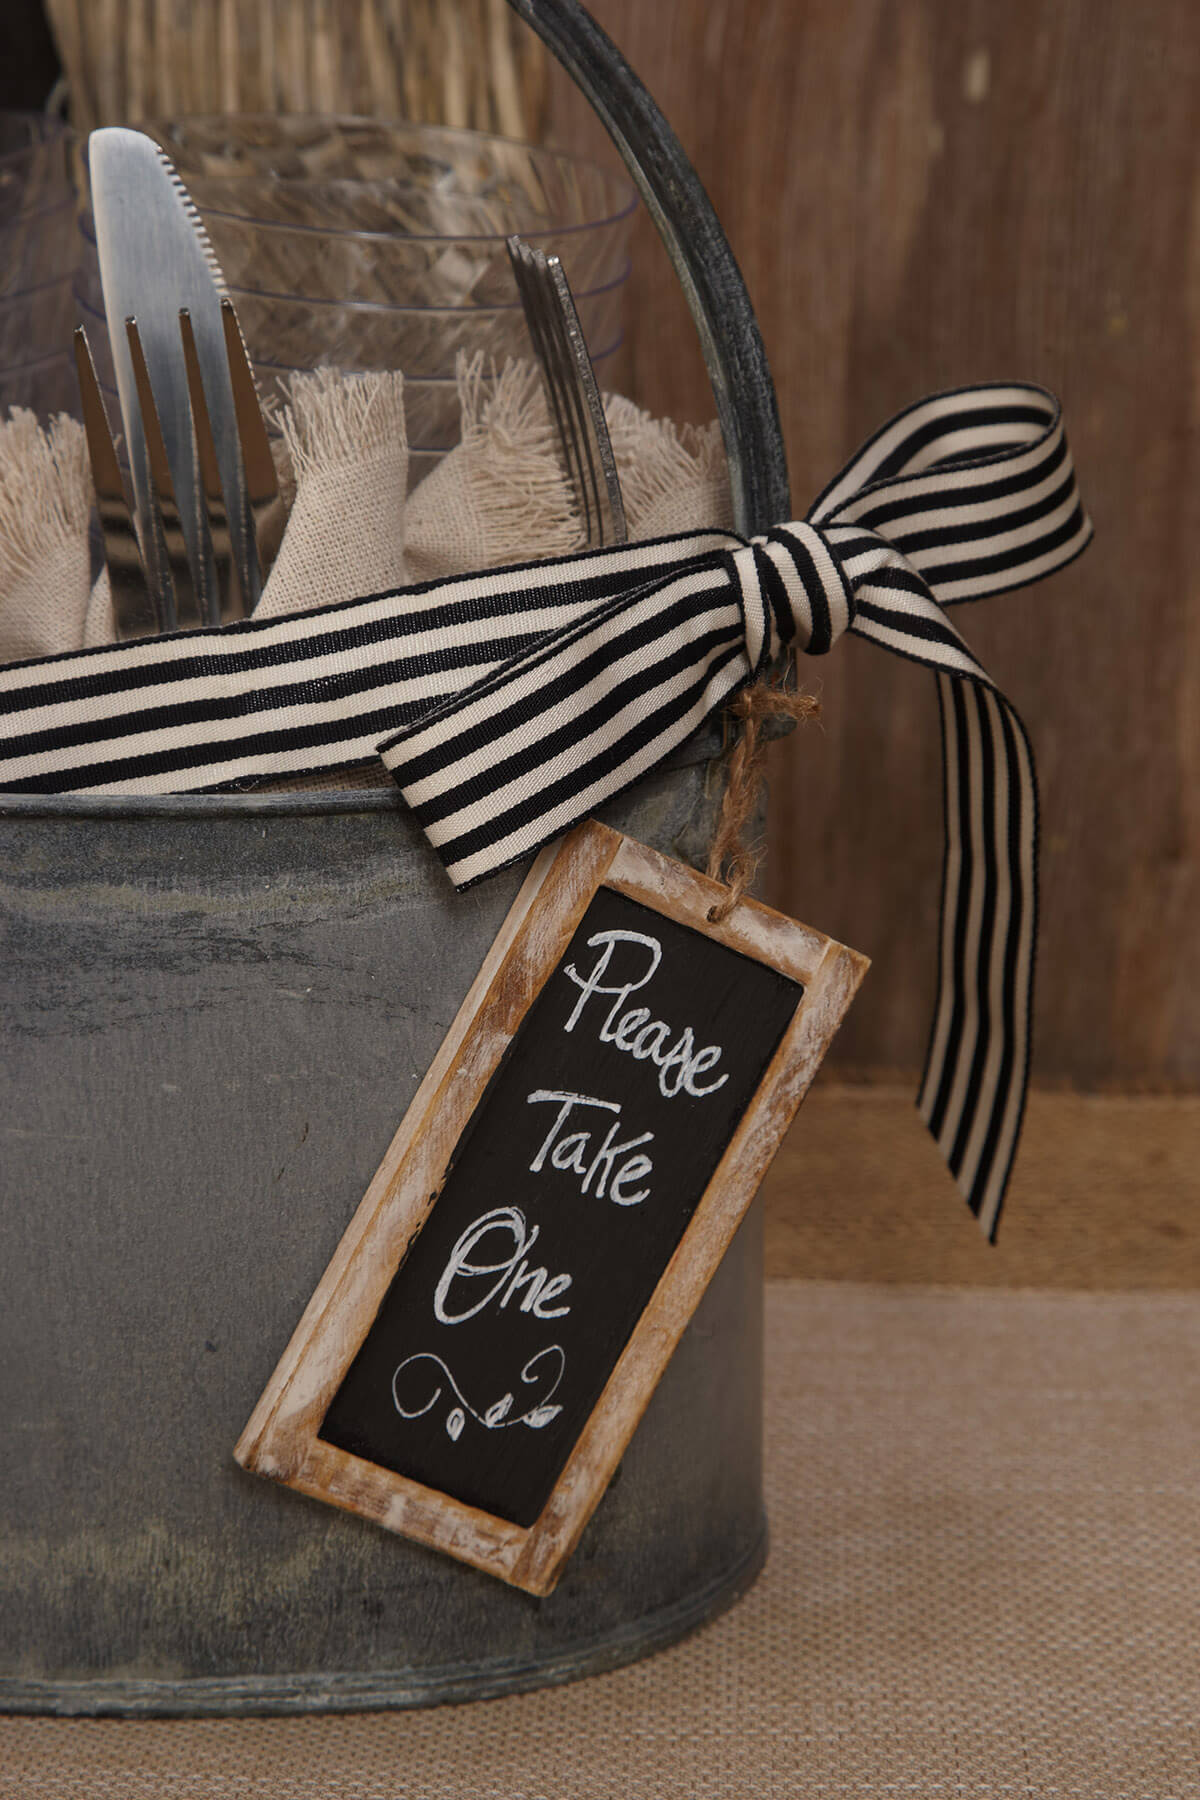 12 Chalkboard Tags with Wood Frame, 2x4 Double Sided